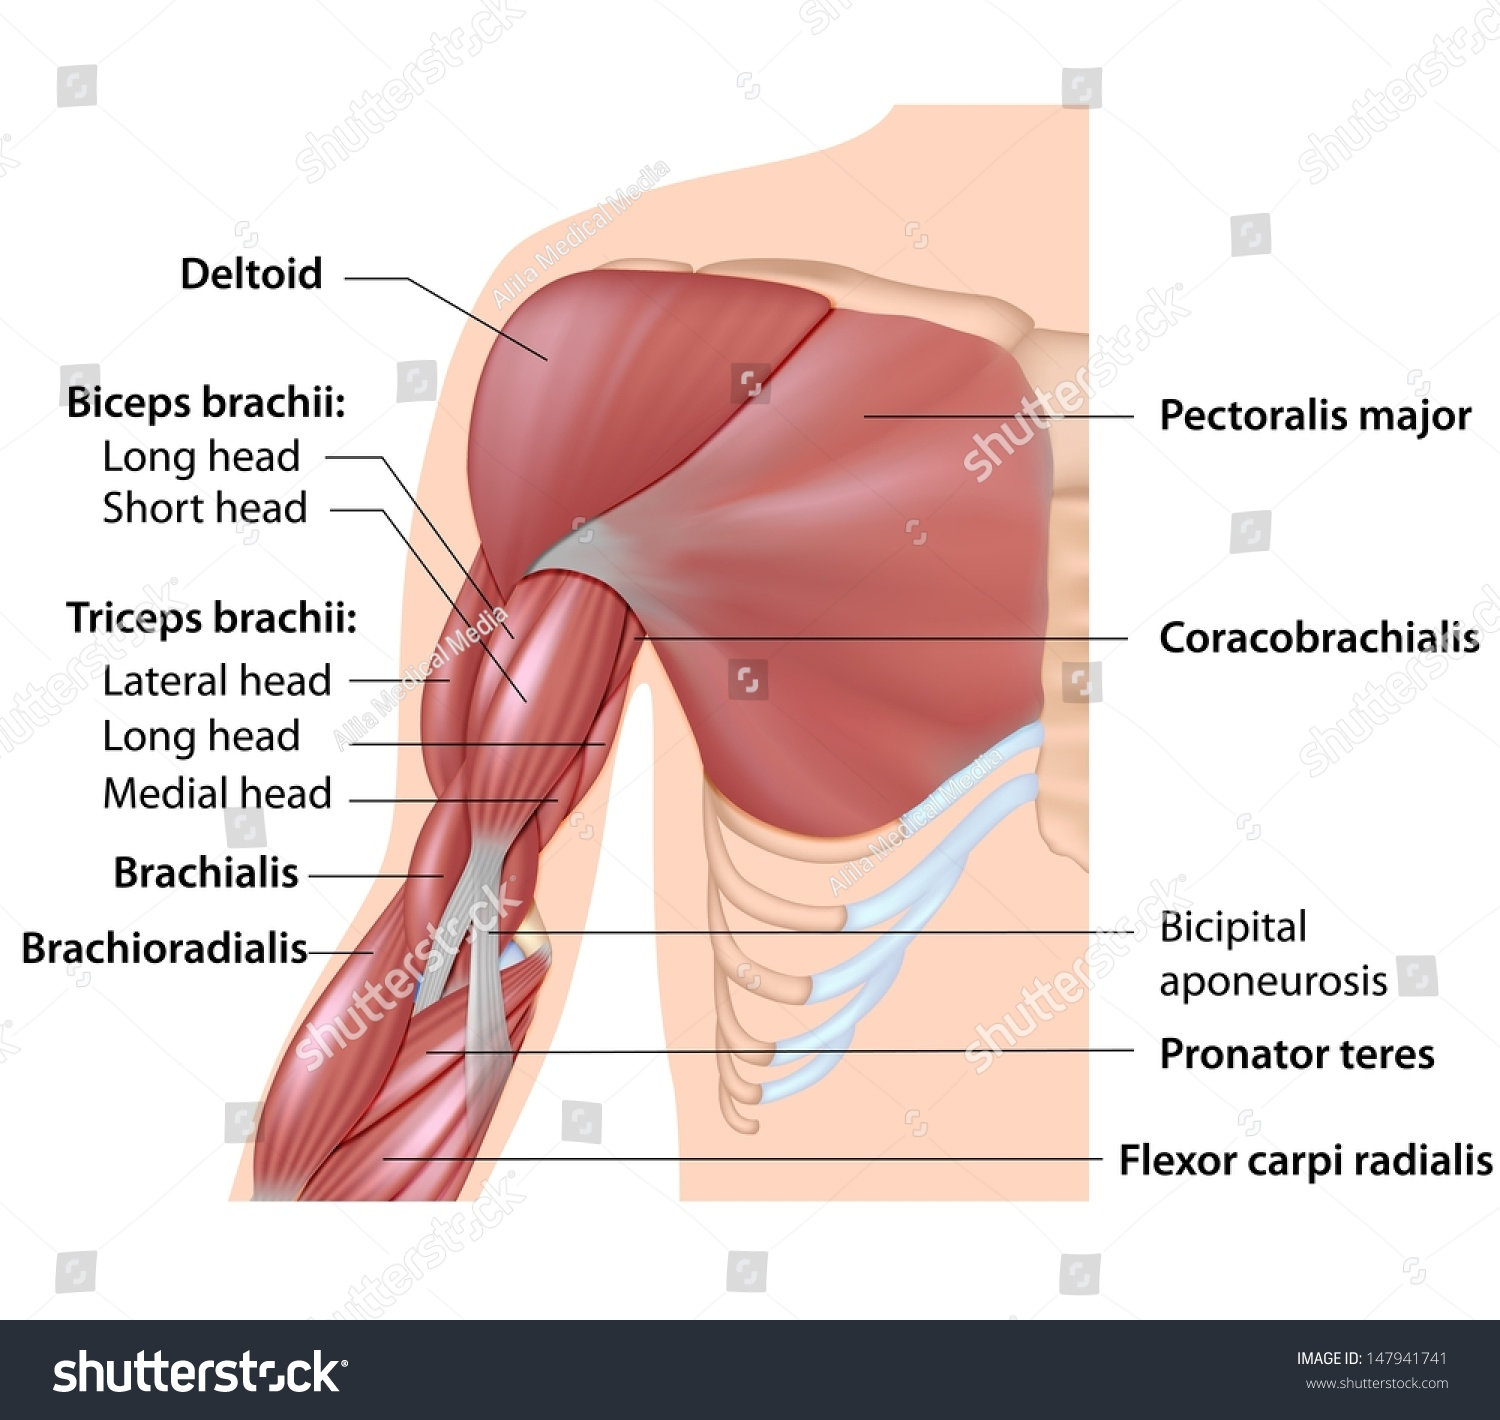 Muscles Arm Anatomy Labeled Diagram Stock Illustration 147941741